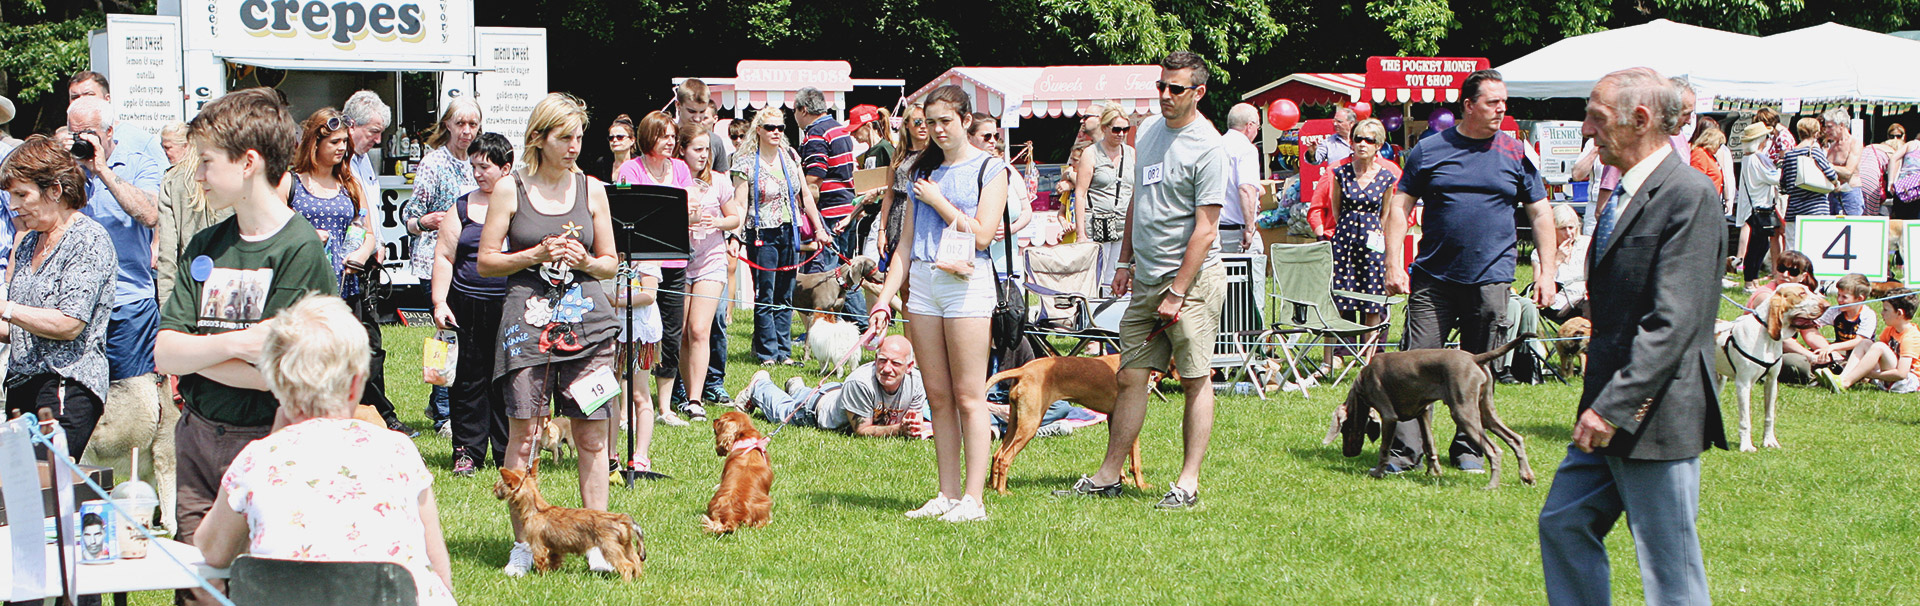 Come one, come all to our annual Barkin' Mad Dog Show!